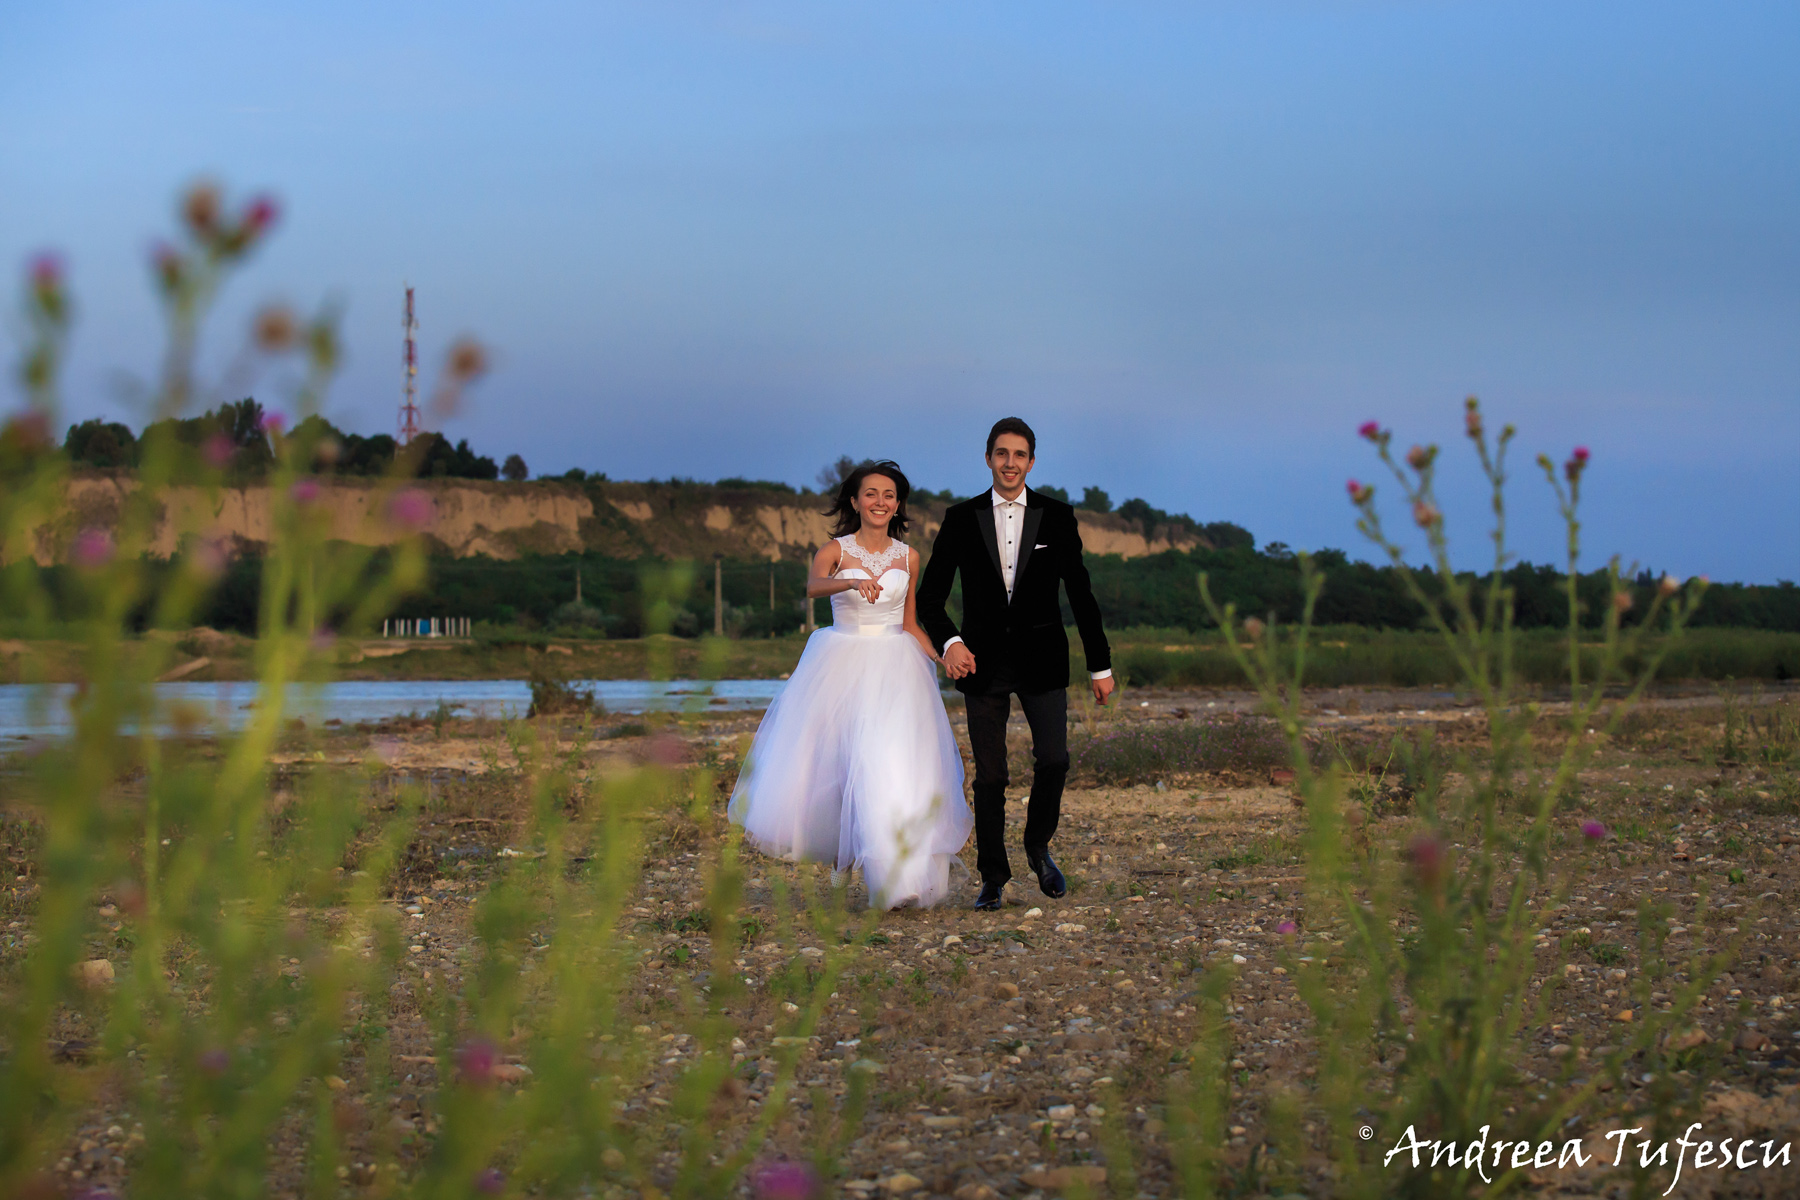 Wedding Photography by Andreea Tufescu - A & E Trash the Dress - Rock the Frock session Romania